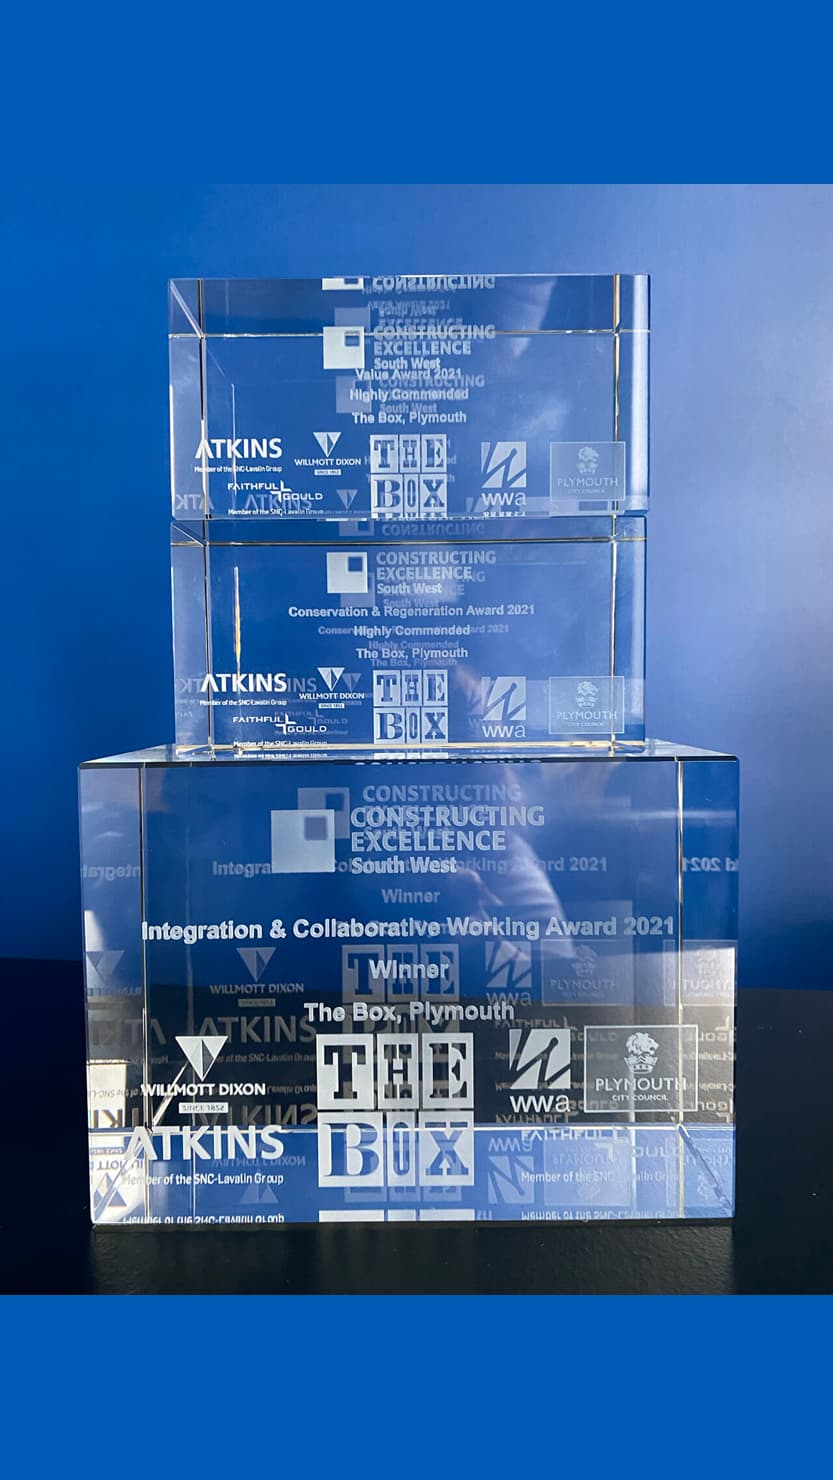 A glass award trophy (The Box's Constructing Excellence South West award)